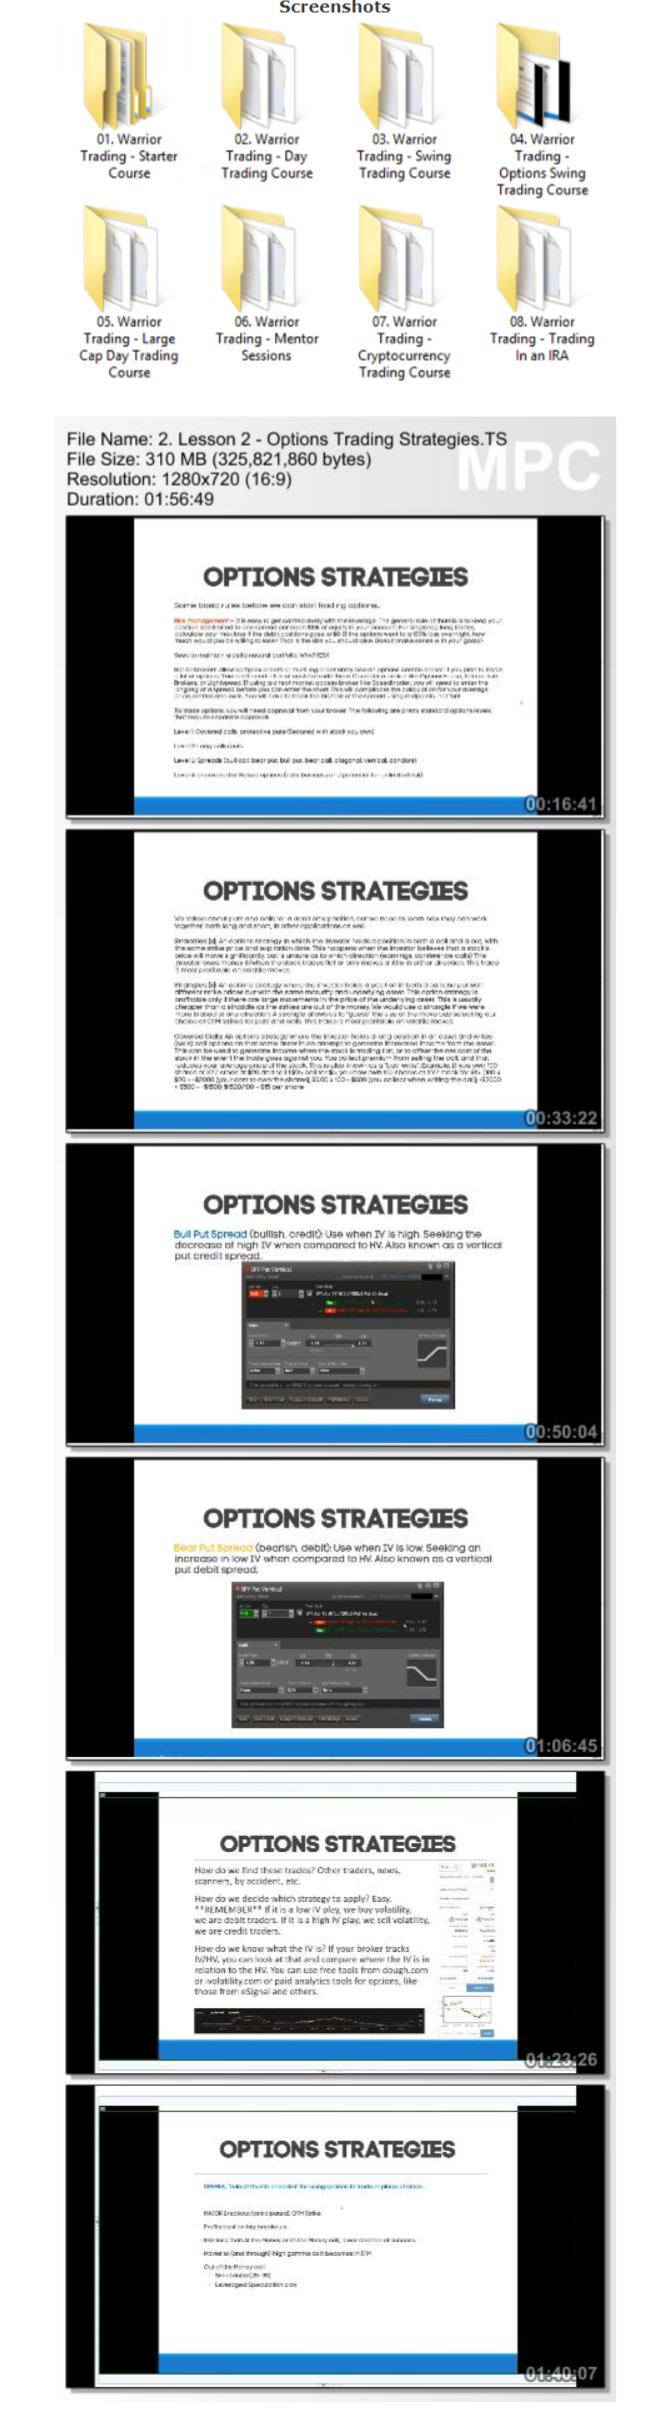 Warrior Pro Trading System - Warrior Trading